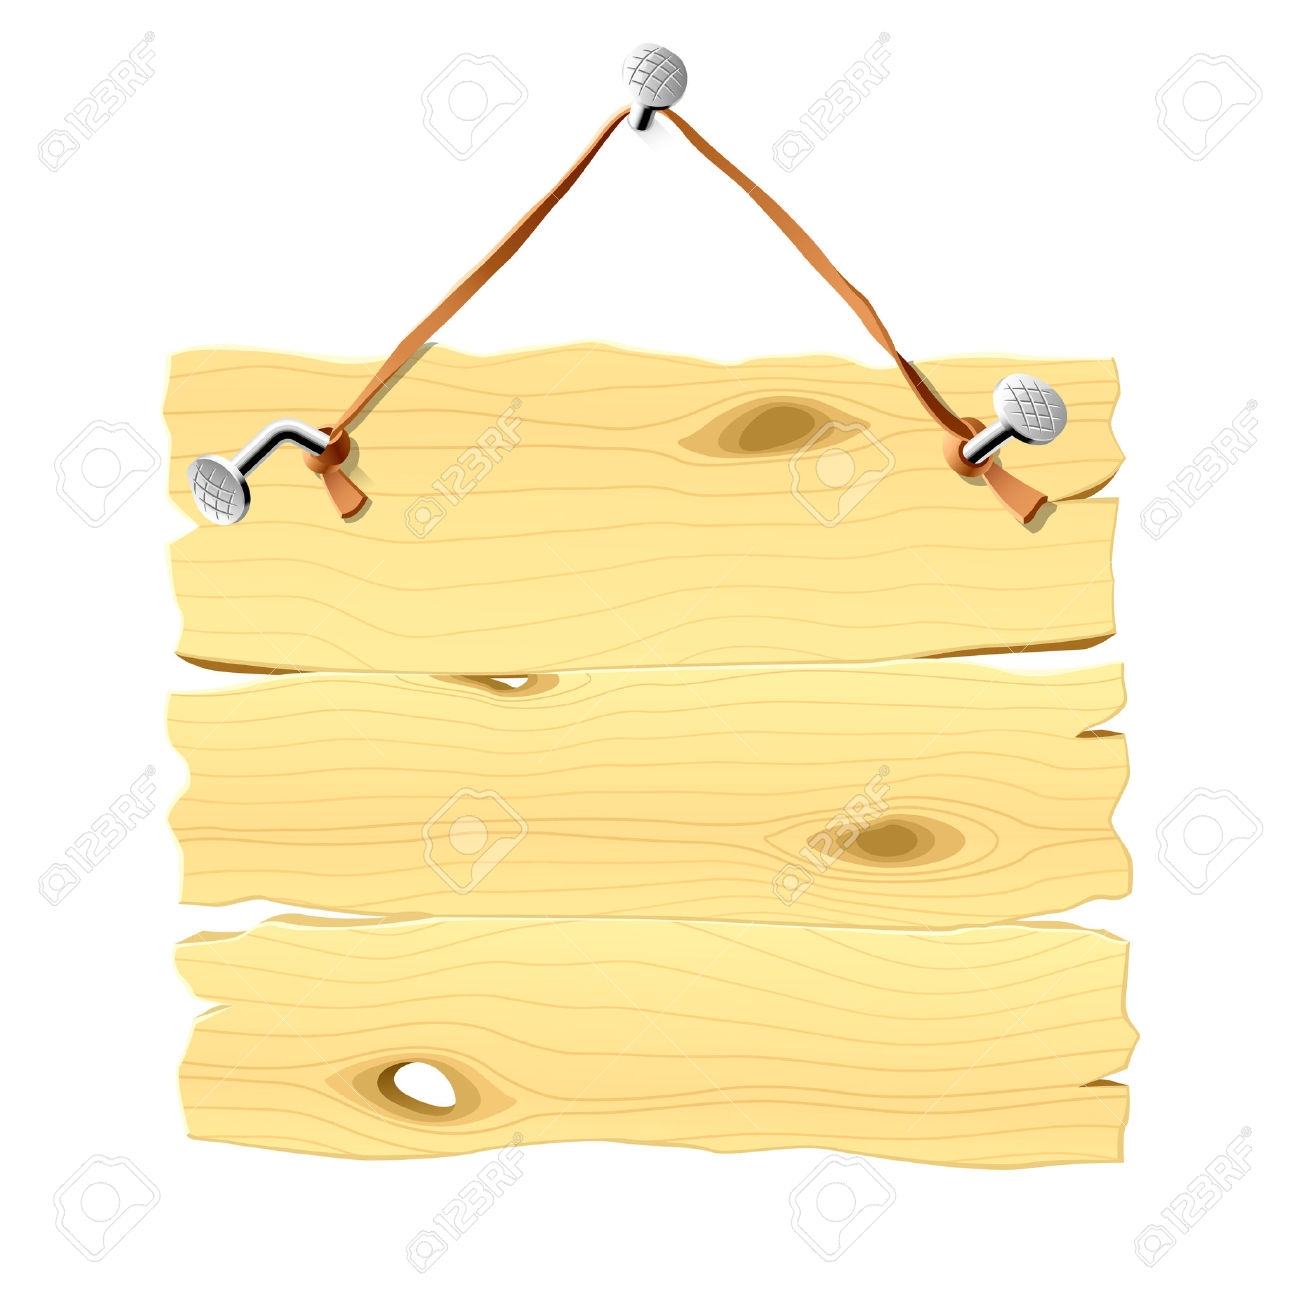 Wooden Board Hanging Clipart